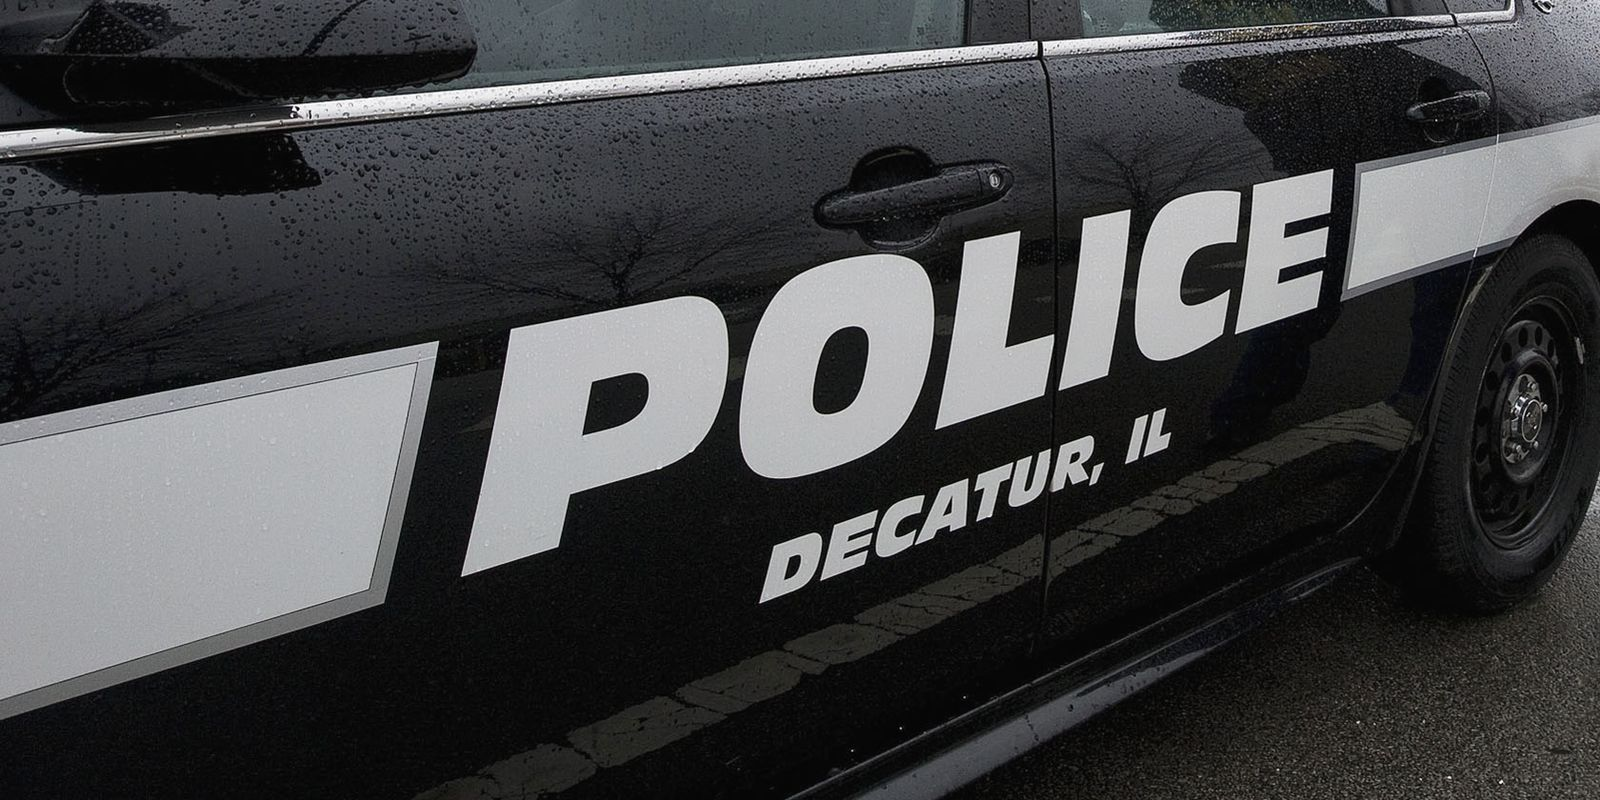 Decatur Police